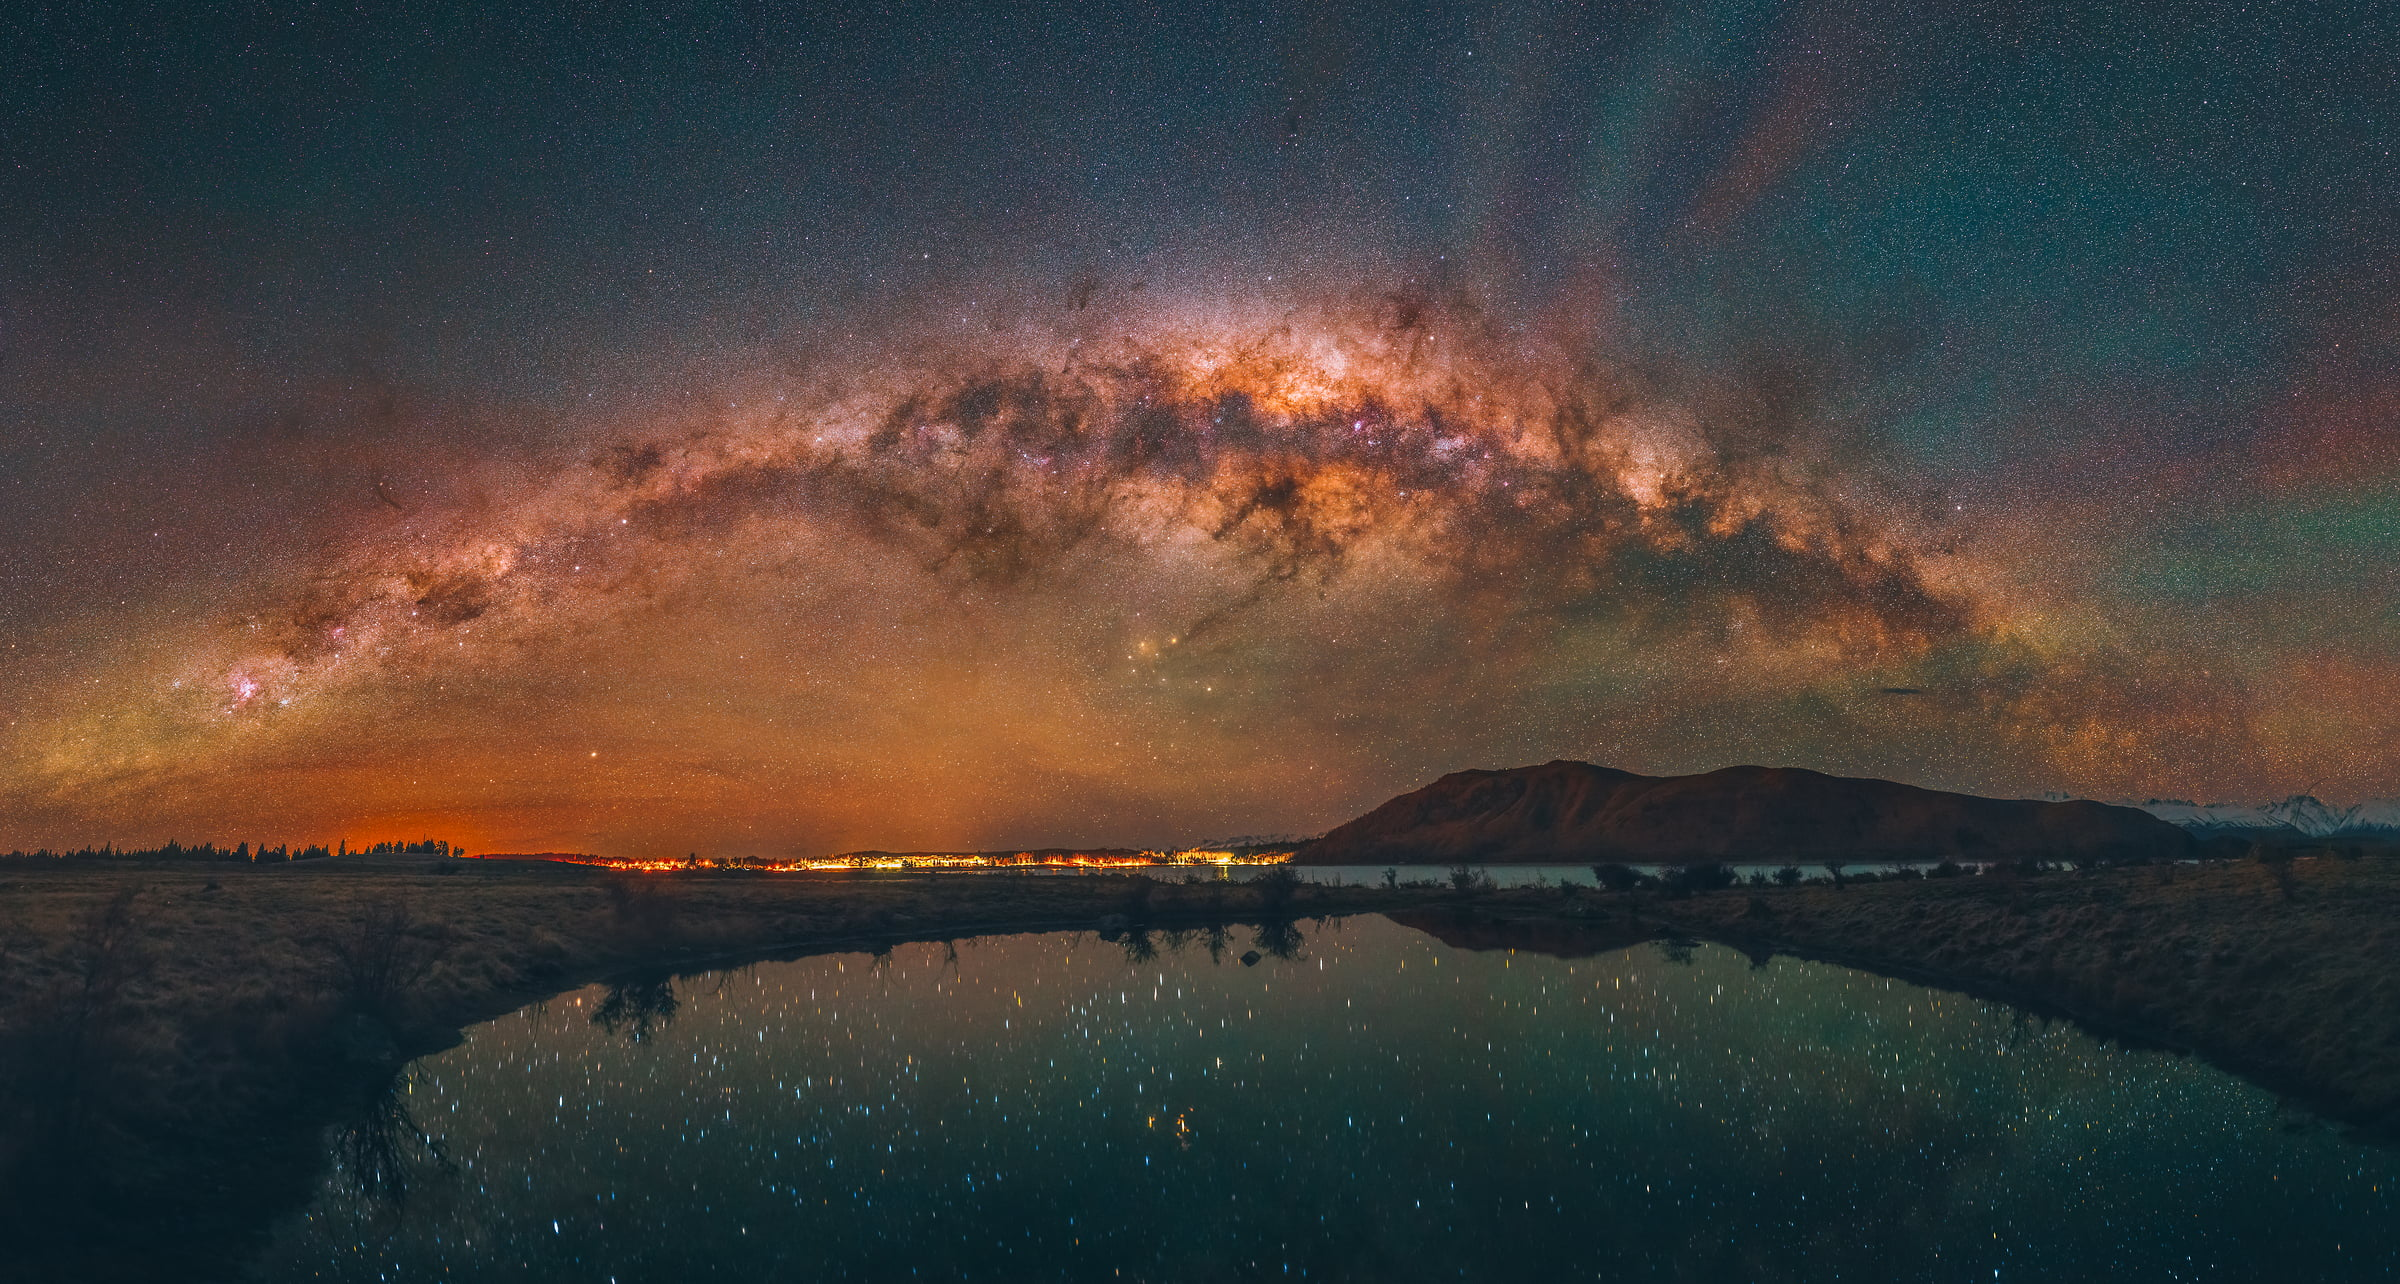 348 megapixels! A very high resolution, large-format VAST photo print of the night sky, milky way, and stars over mountains and a lake; fine art astrophotography landscape photo created by Paul Wilson in Lake Tekapo, New Zealand